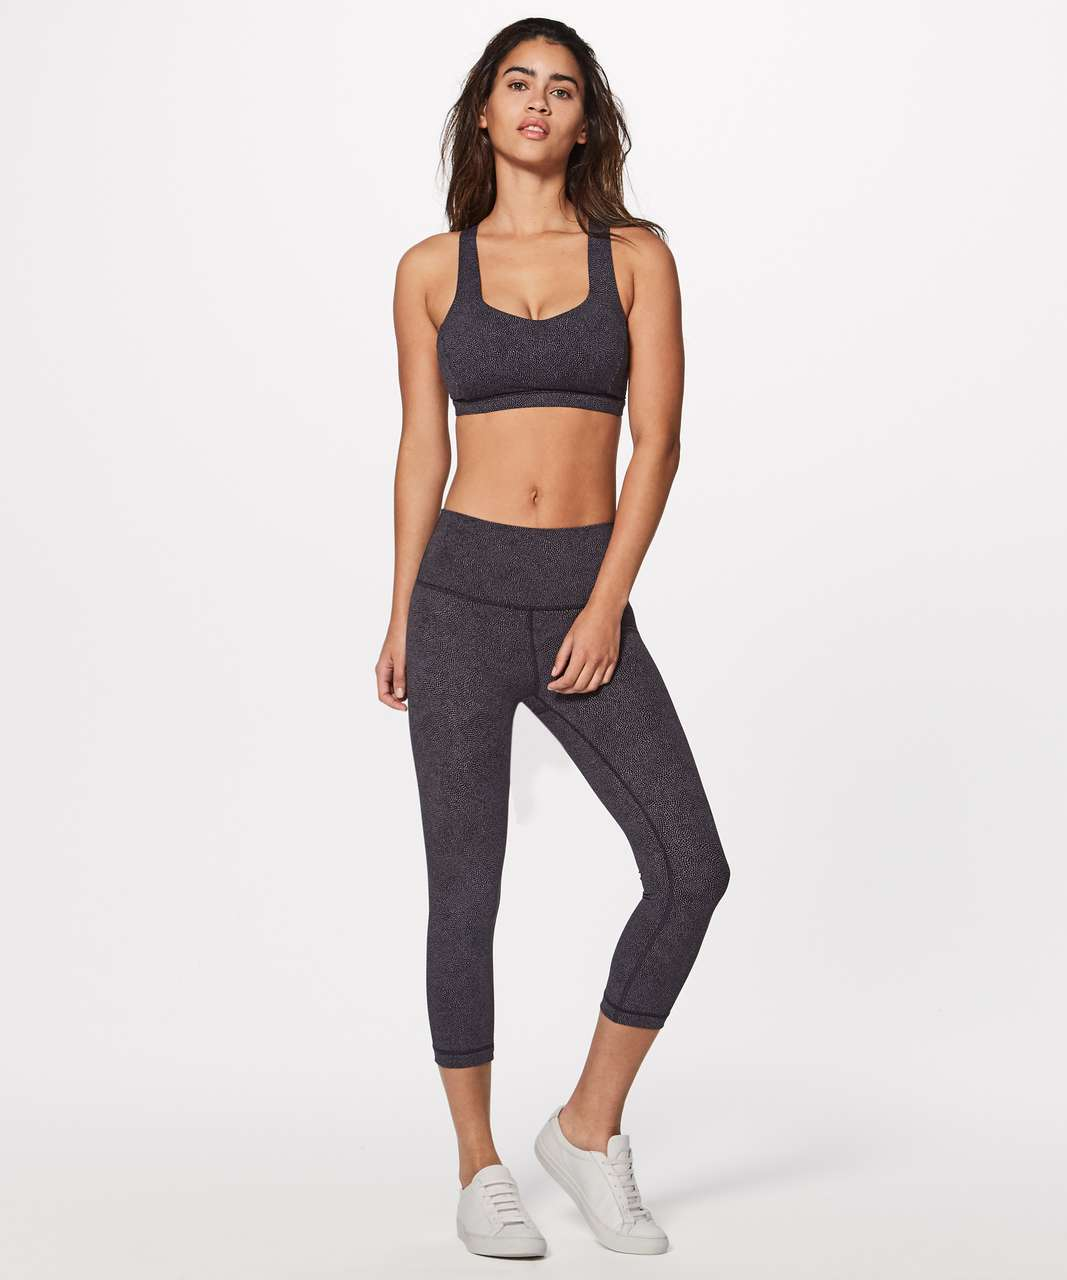 Lululemon Free To Be Serene Bra - Disperse Dusky Lavender Black